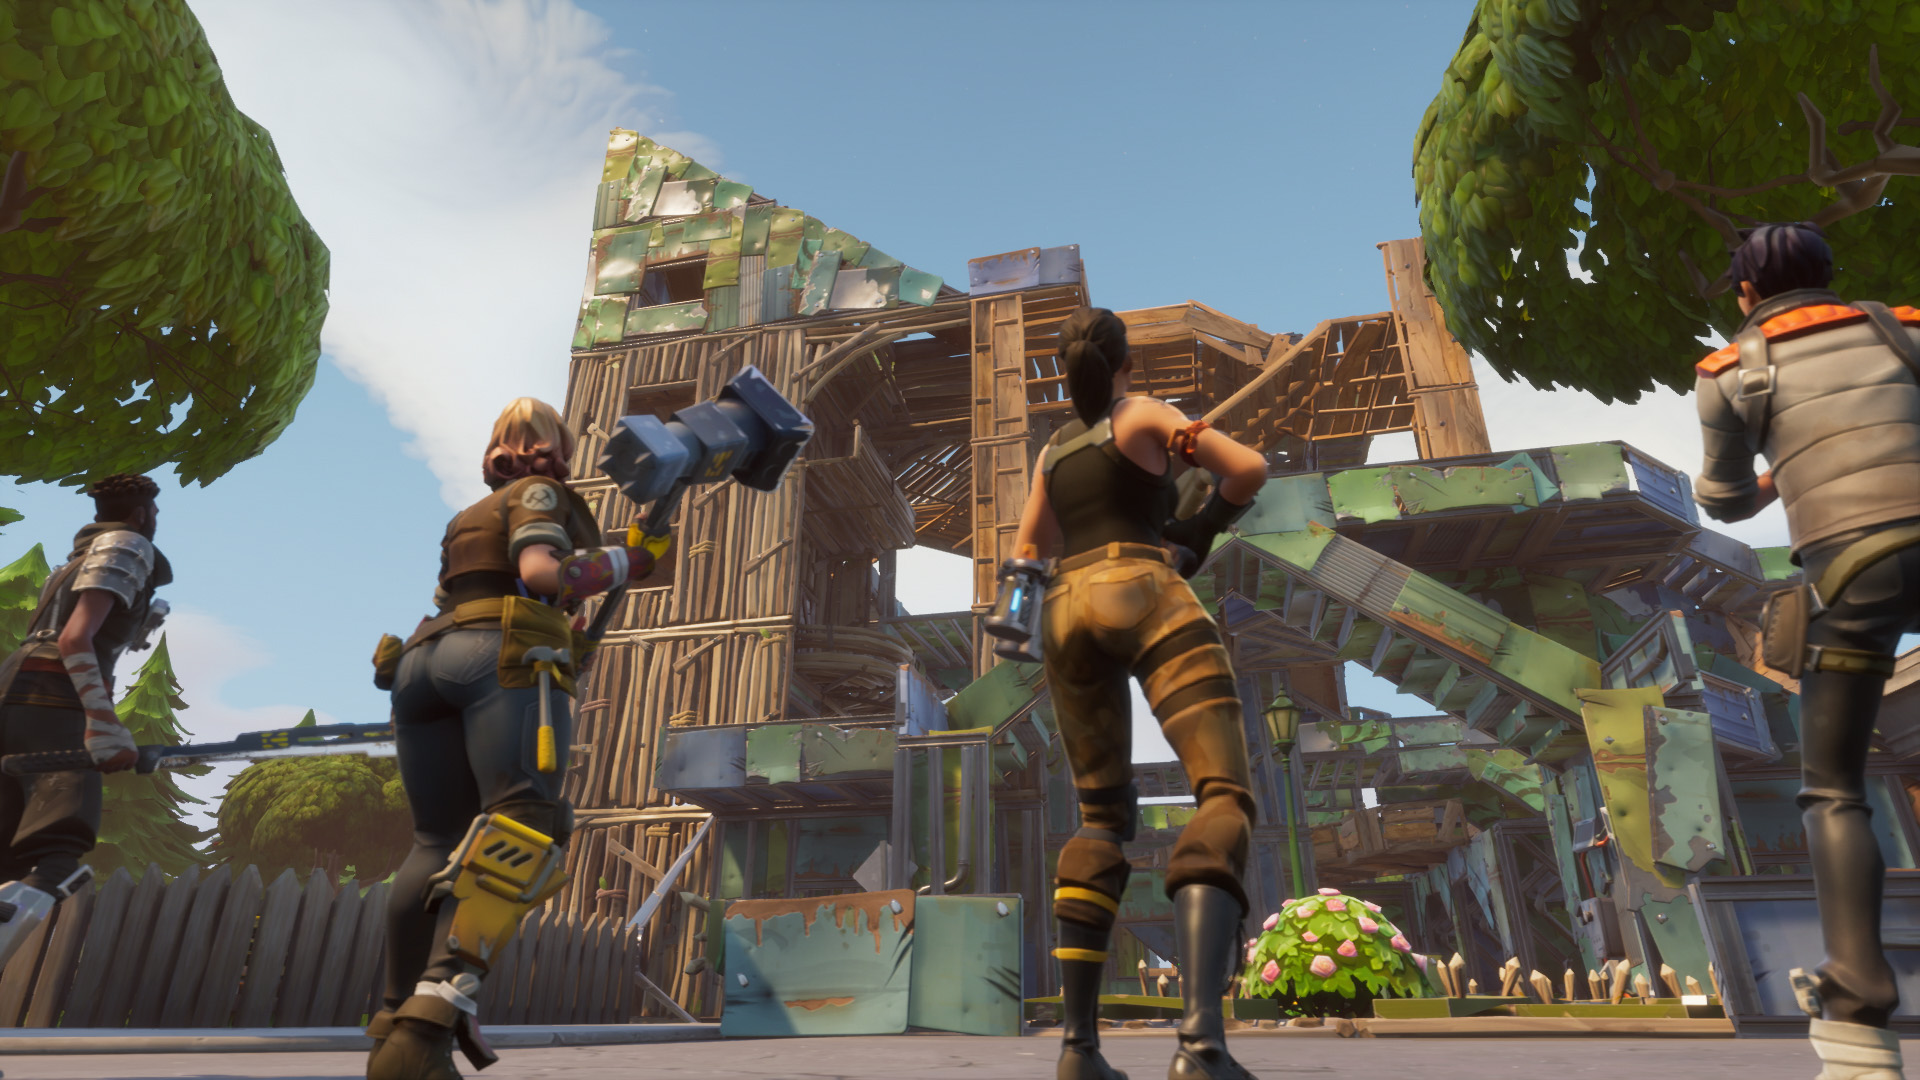 Whats Top 9 Percent Fortnite What Parents Need To Know About Fortnite